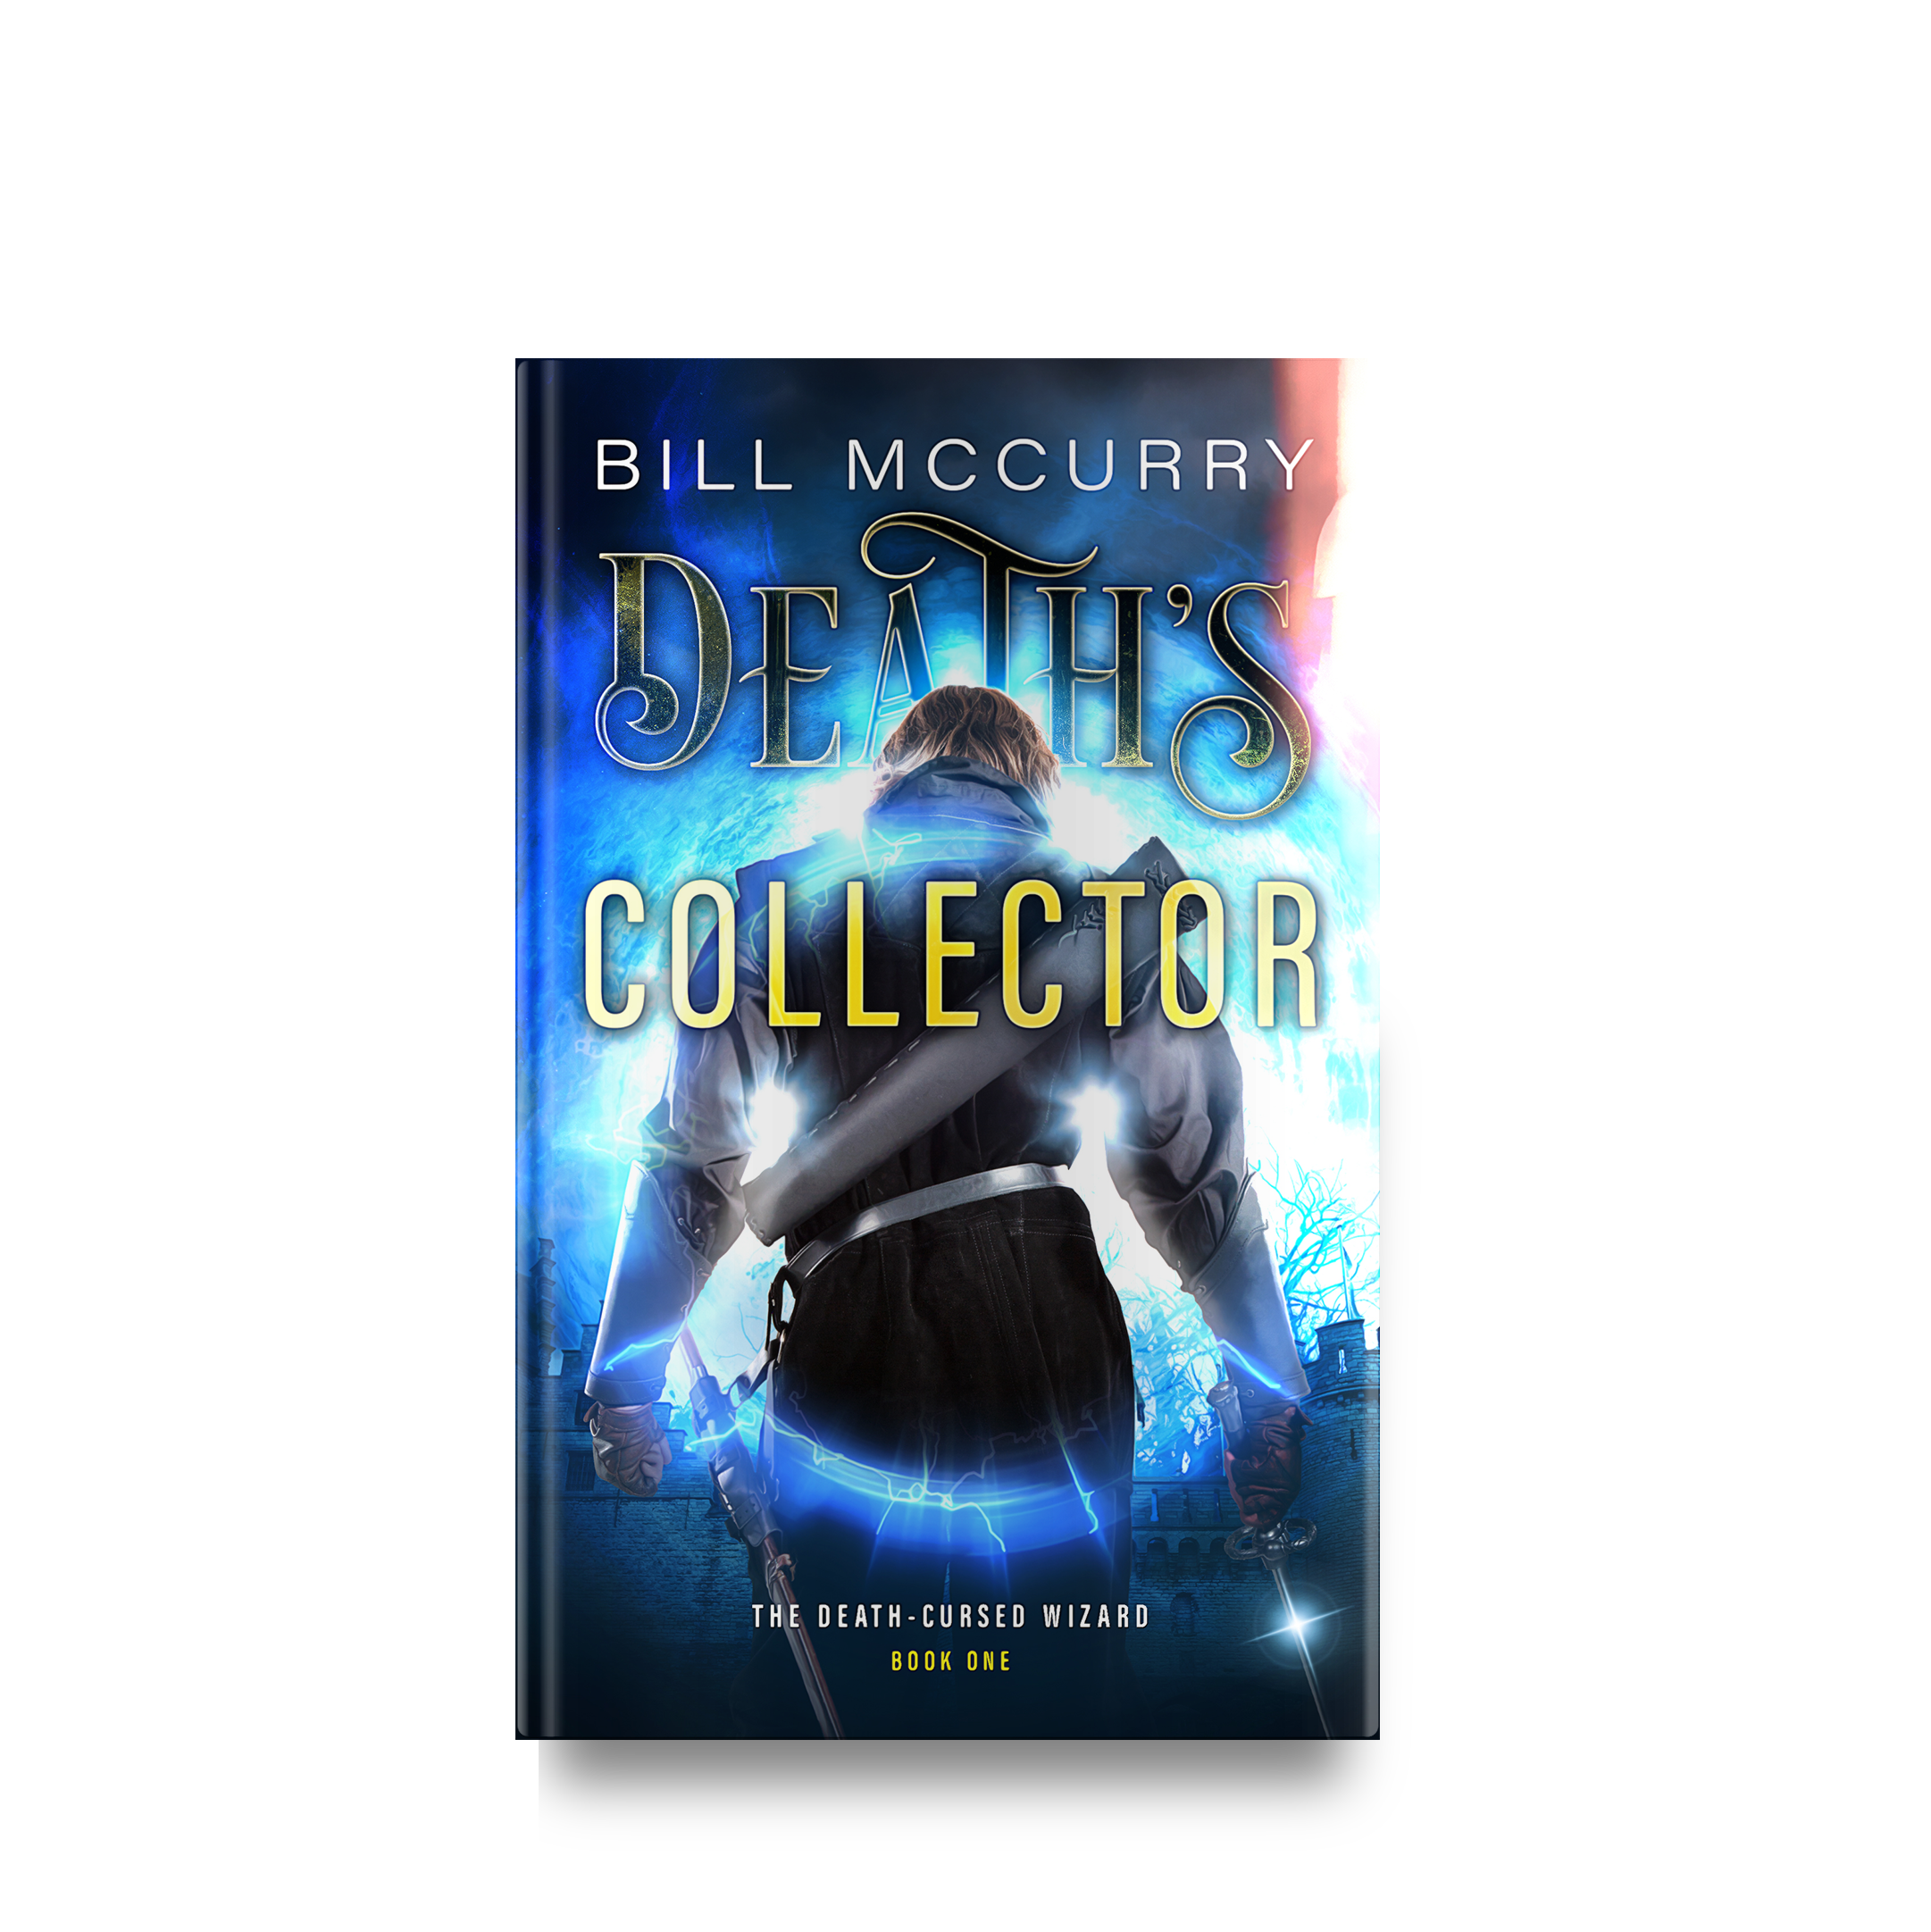 Bill McCurry's Death's Collector || Designed by TheThatchery.com